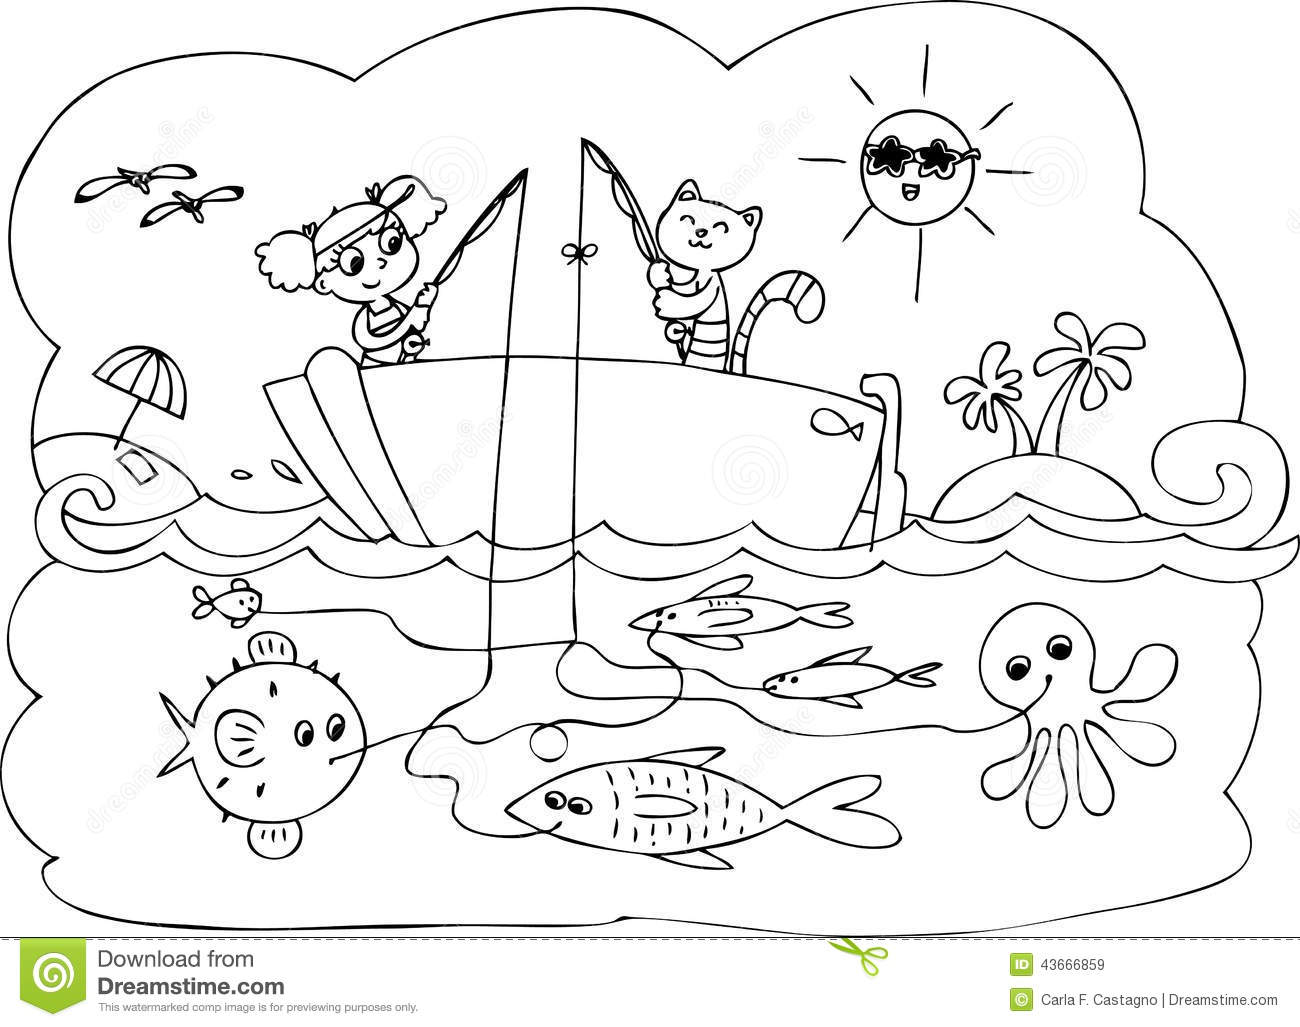 fish coloring pages games kids - photo#15